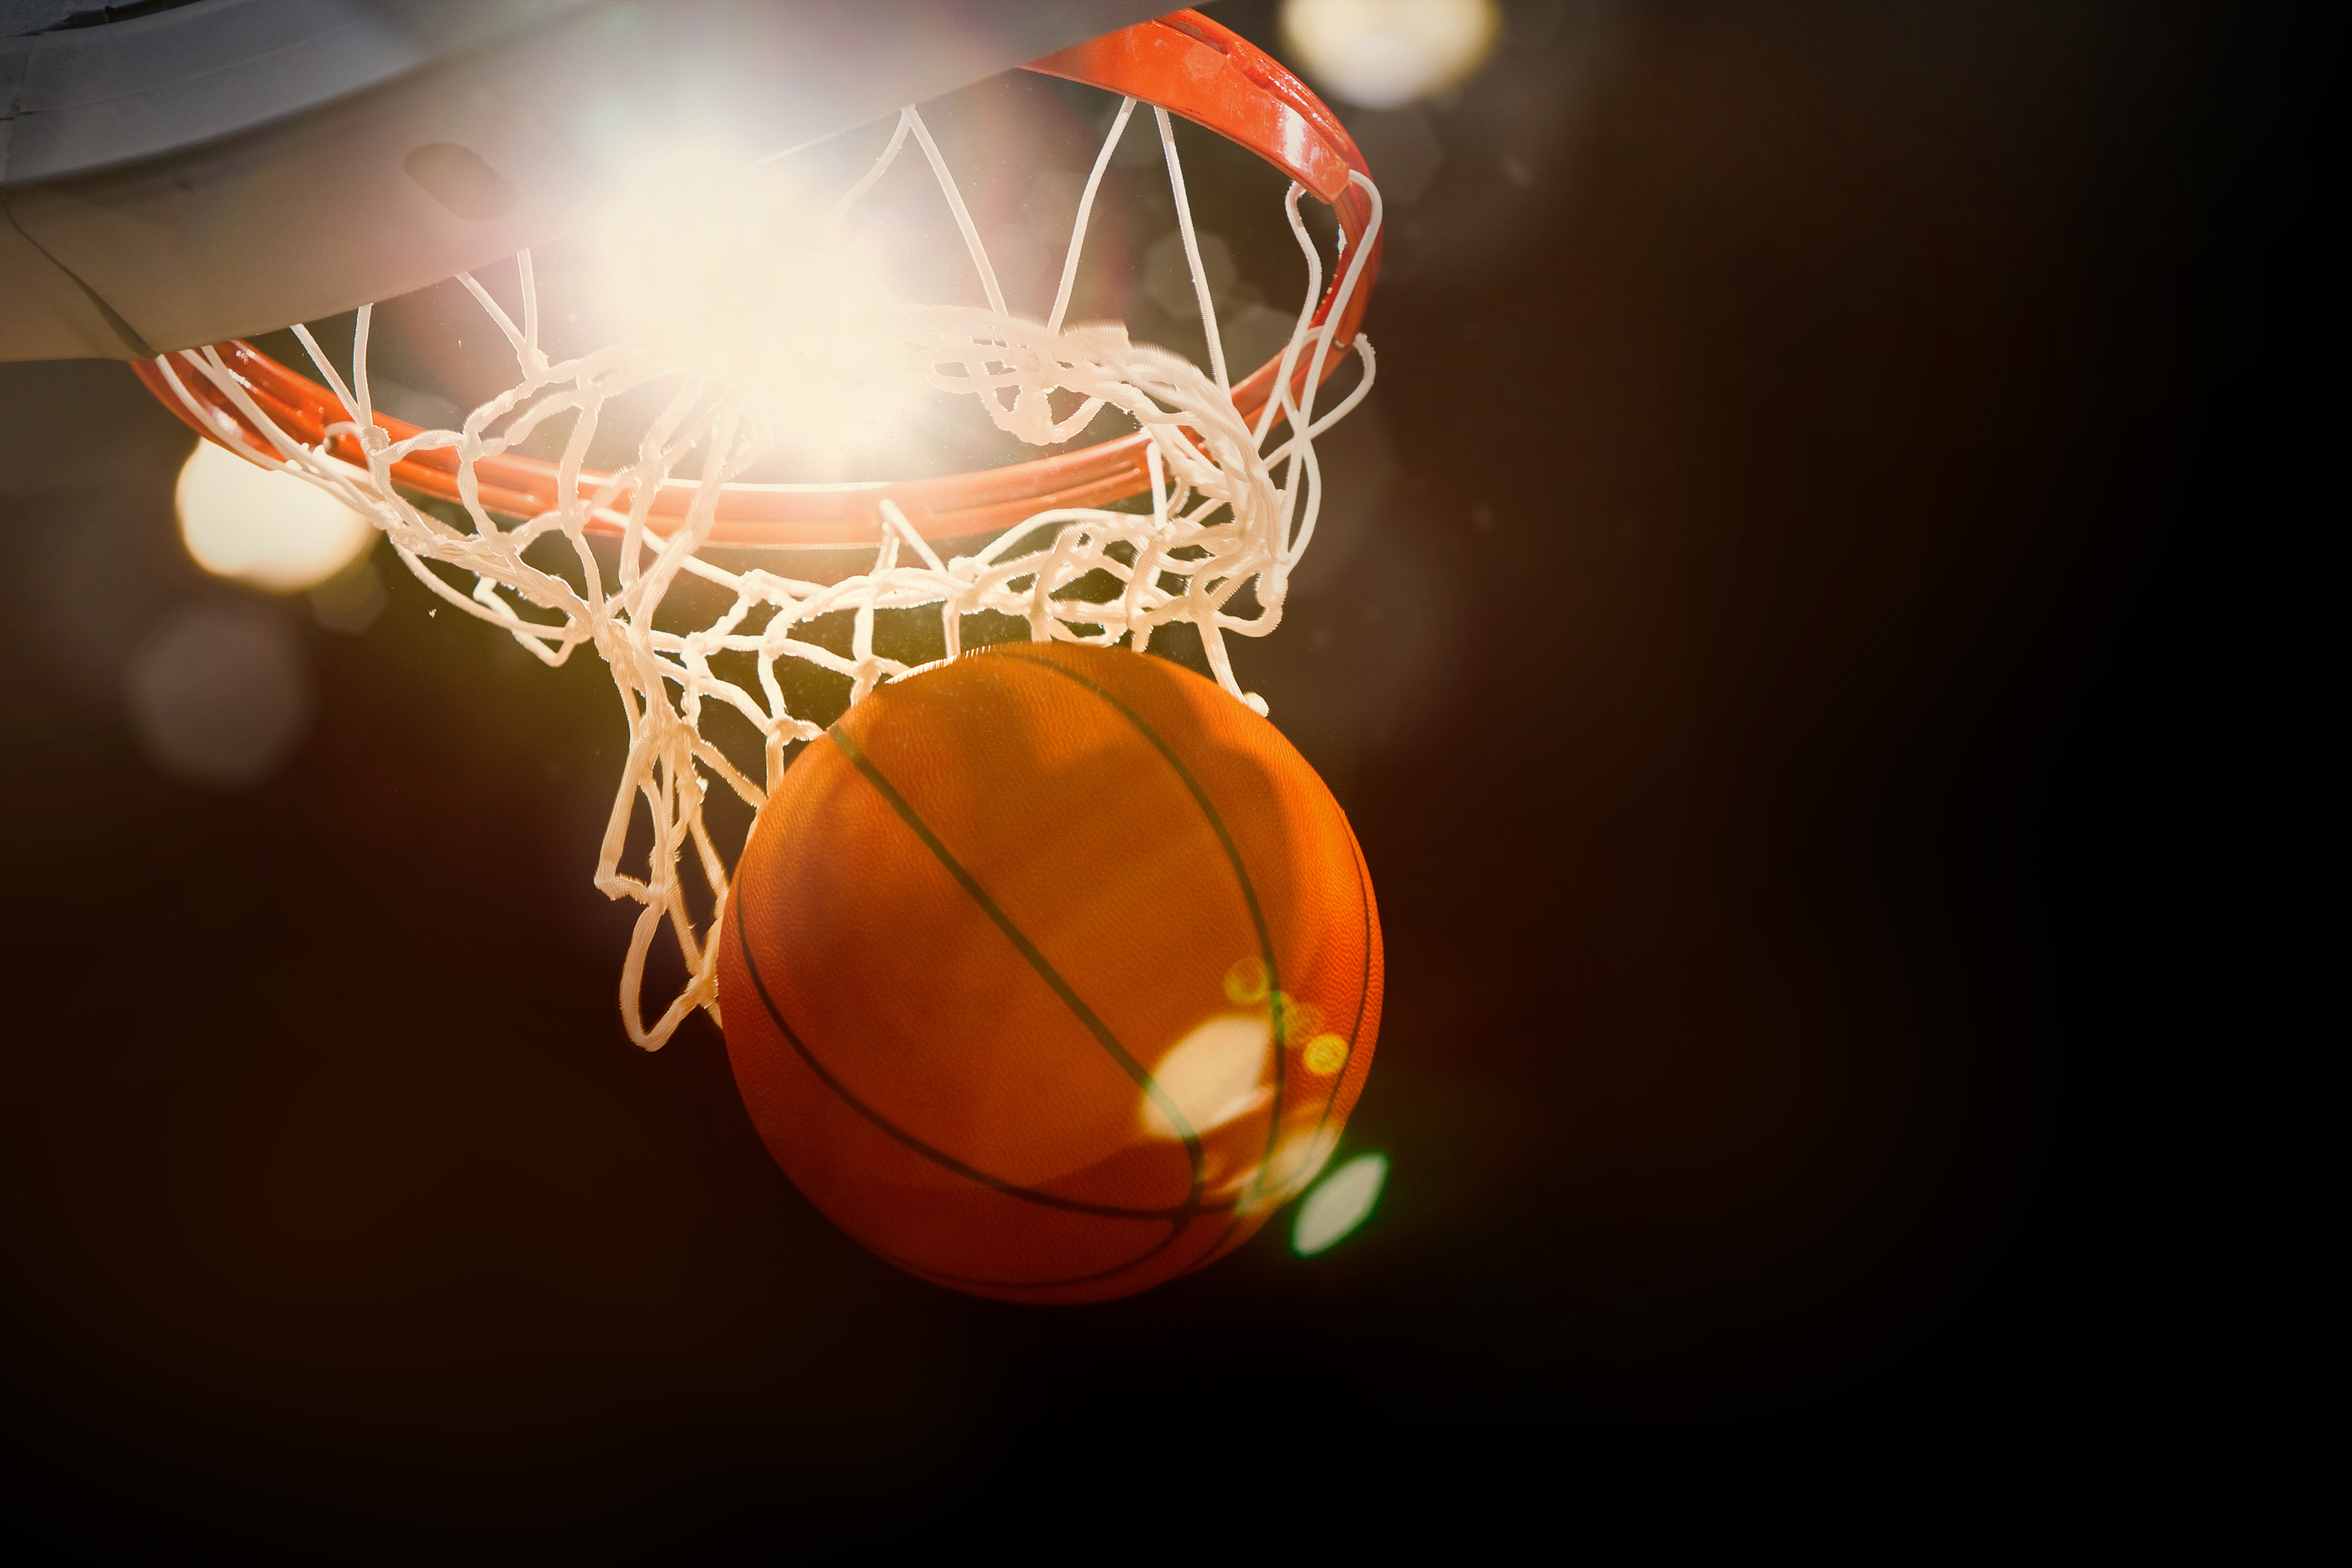 bigstock-Basketball-going-through-the-b-64218517.jpg